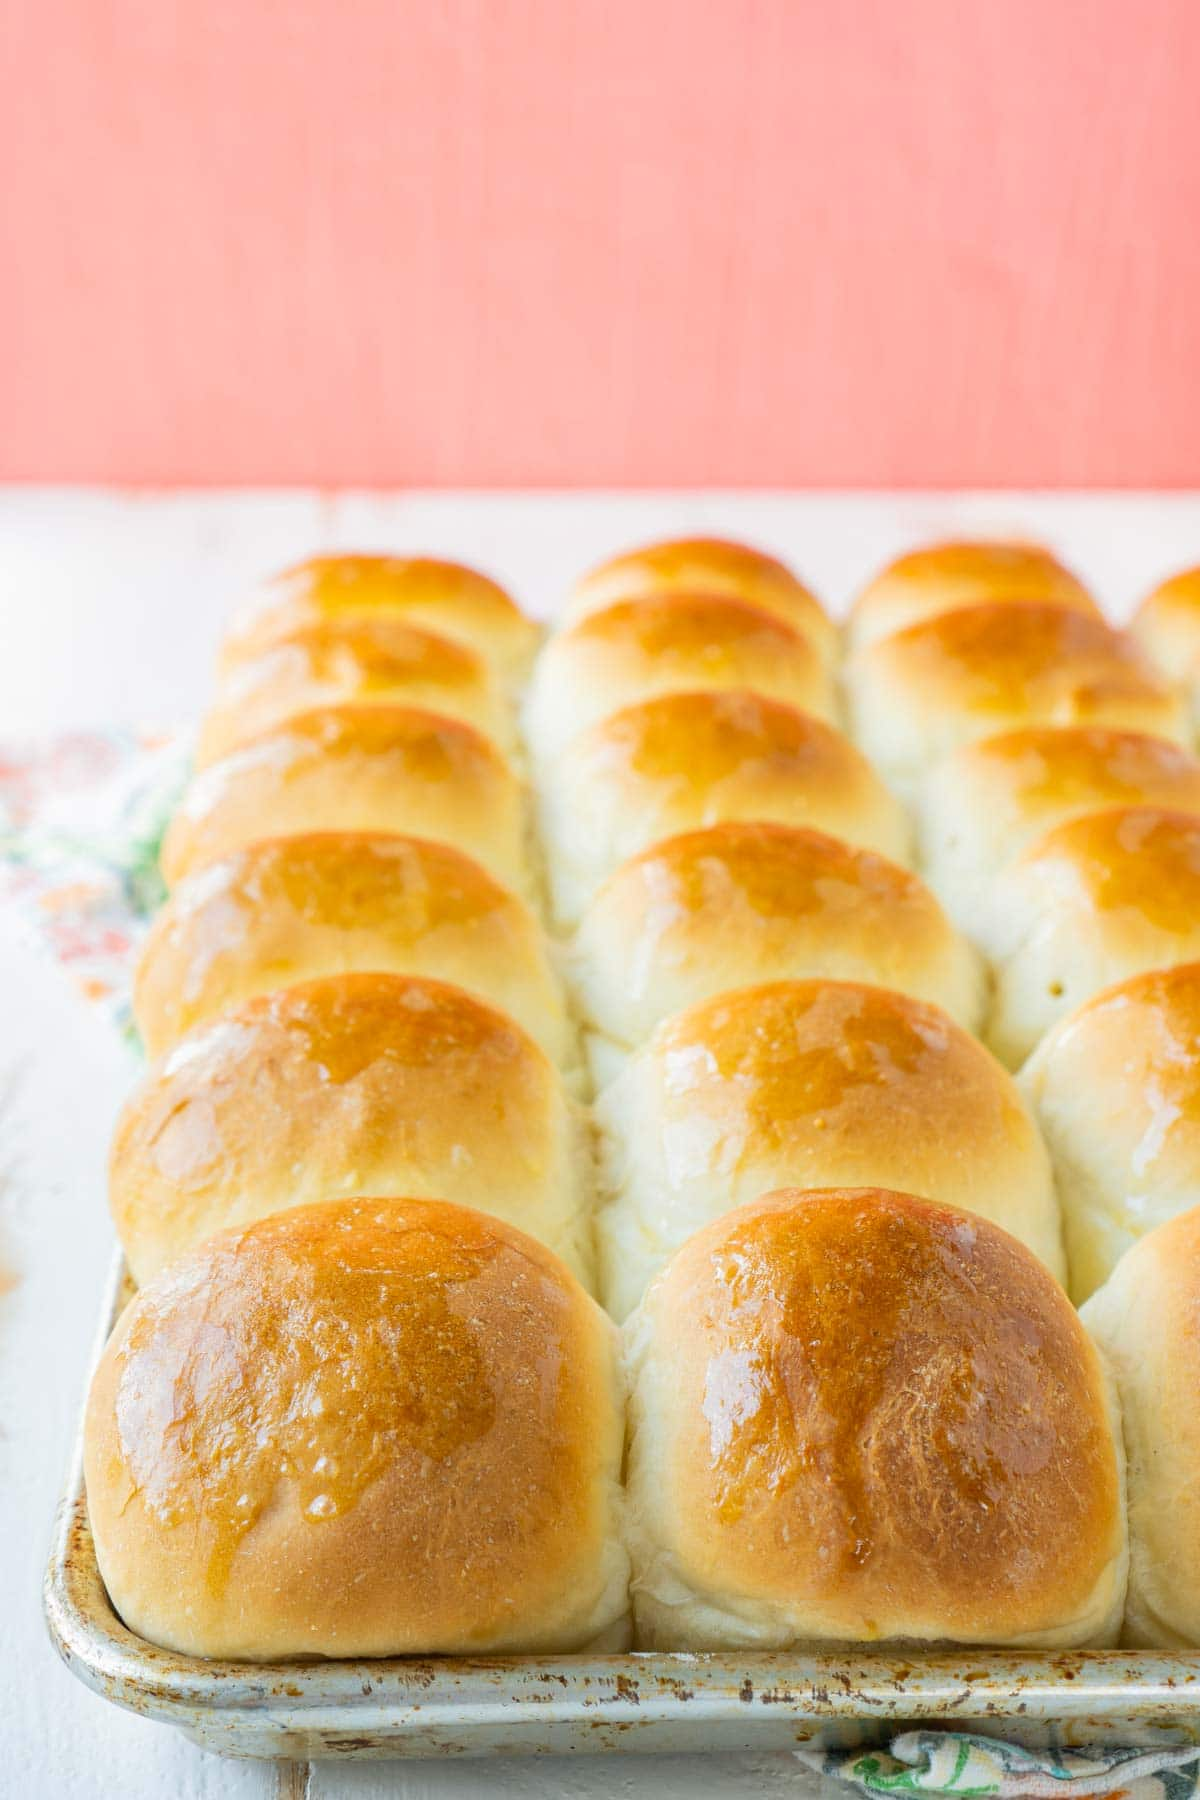 A baking sheet full of homemade yeast rolls